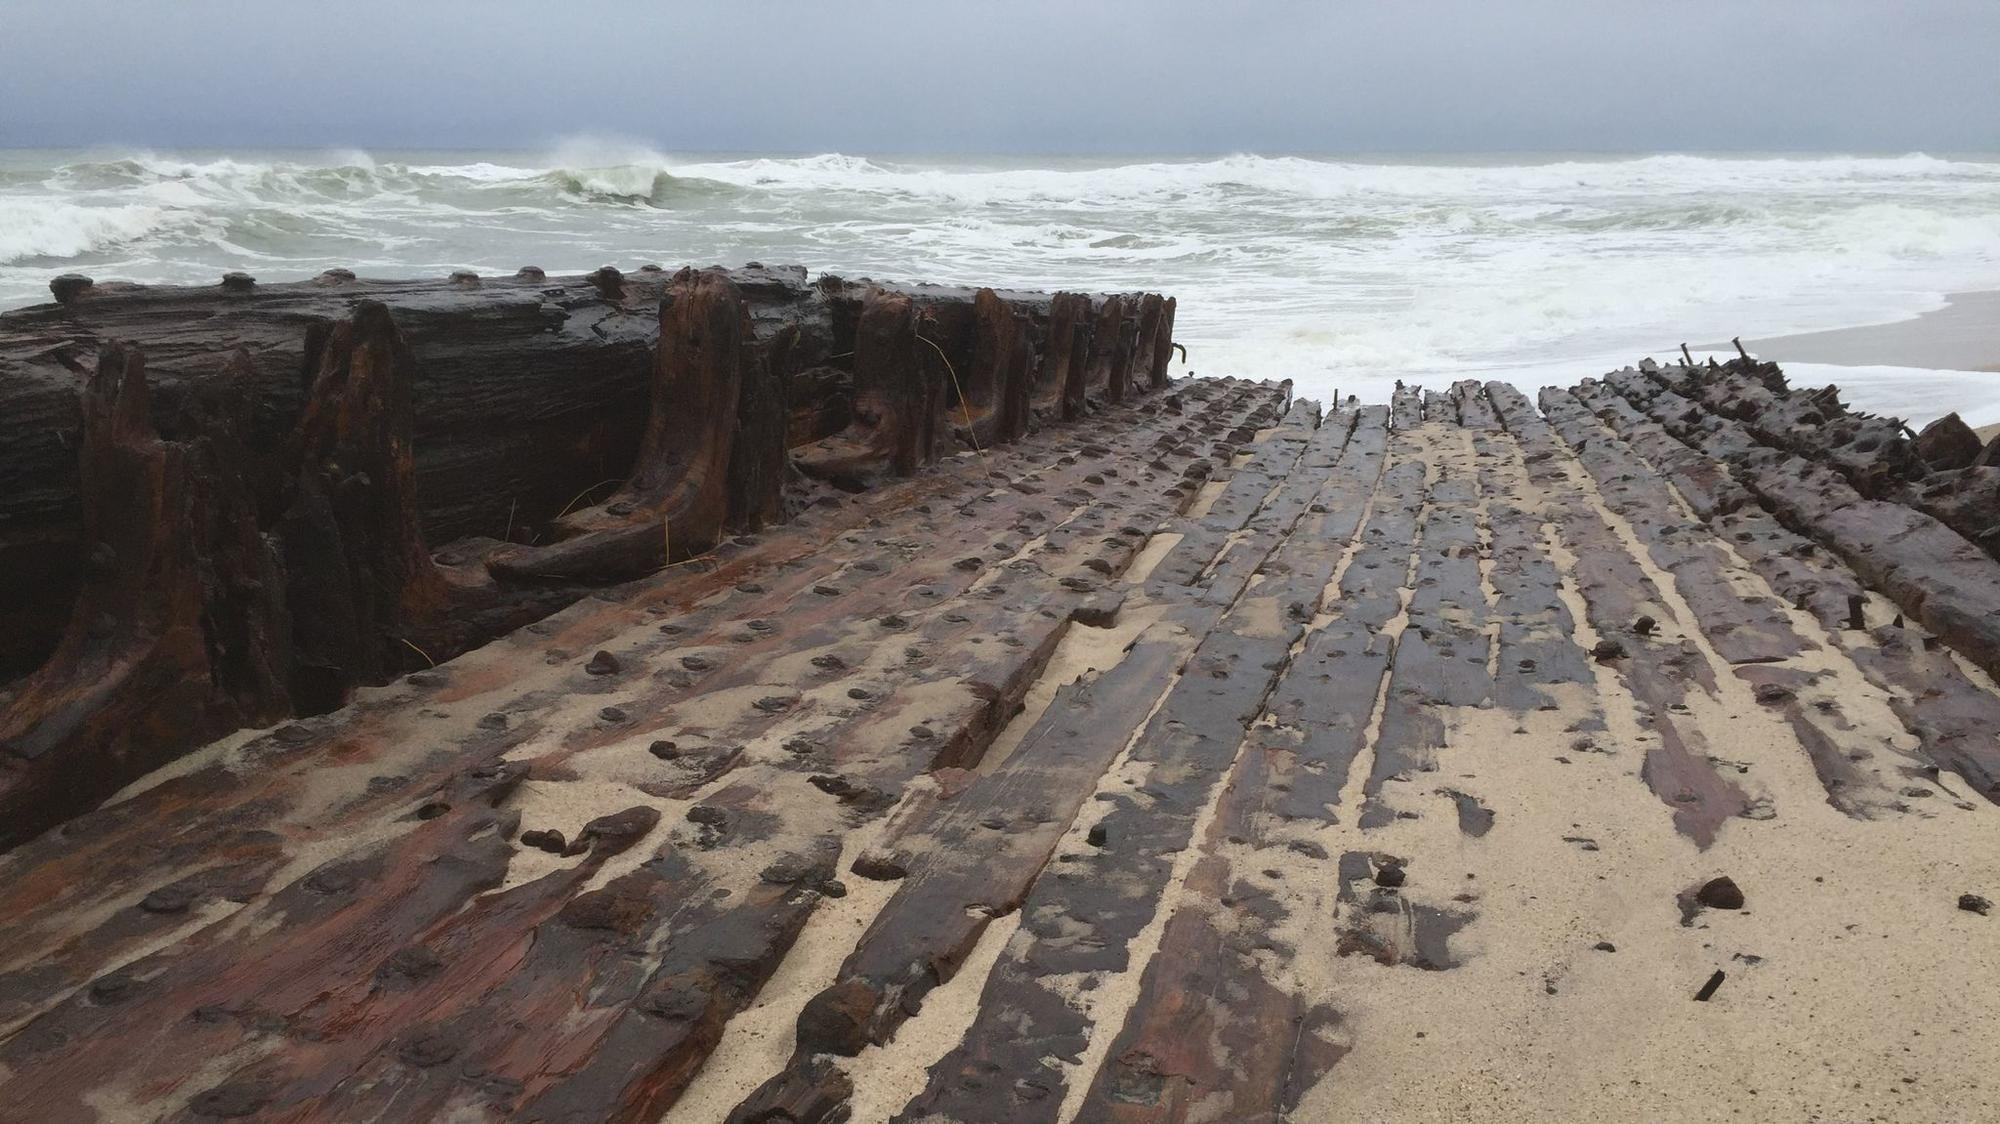 A Ghostly Shipwreck On The Shores Of Cape Cod - Hartford Courant